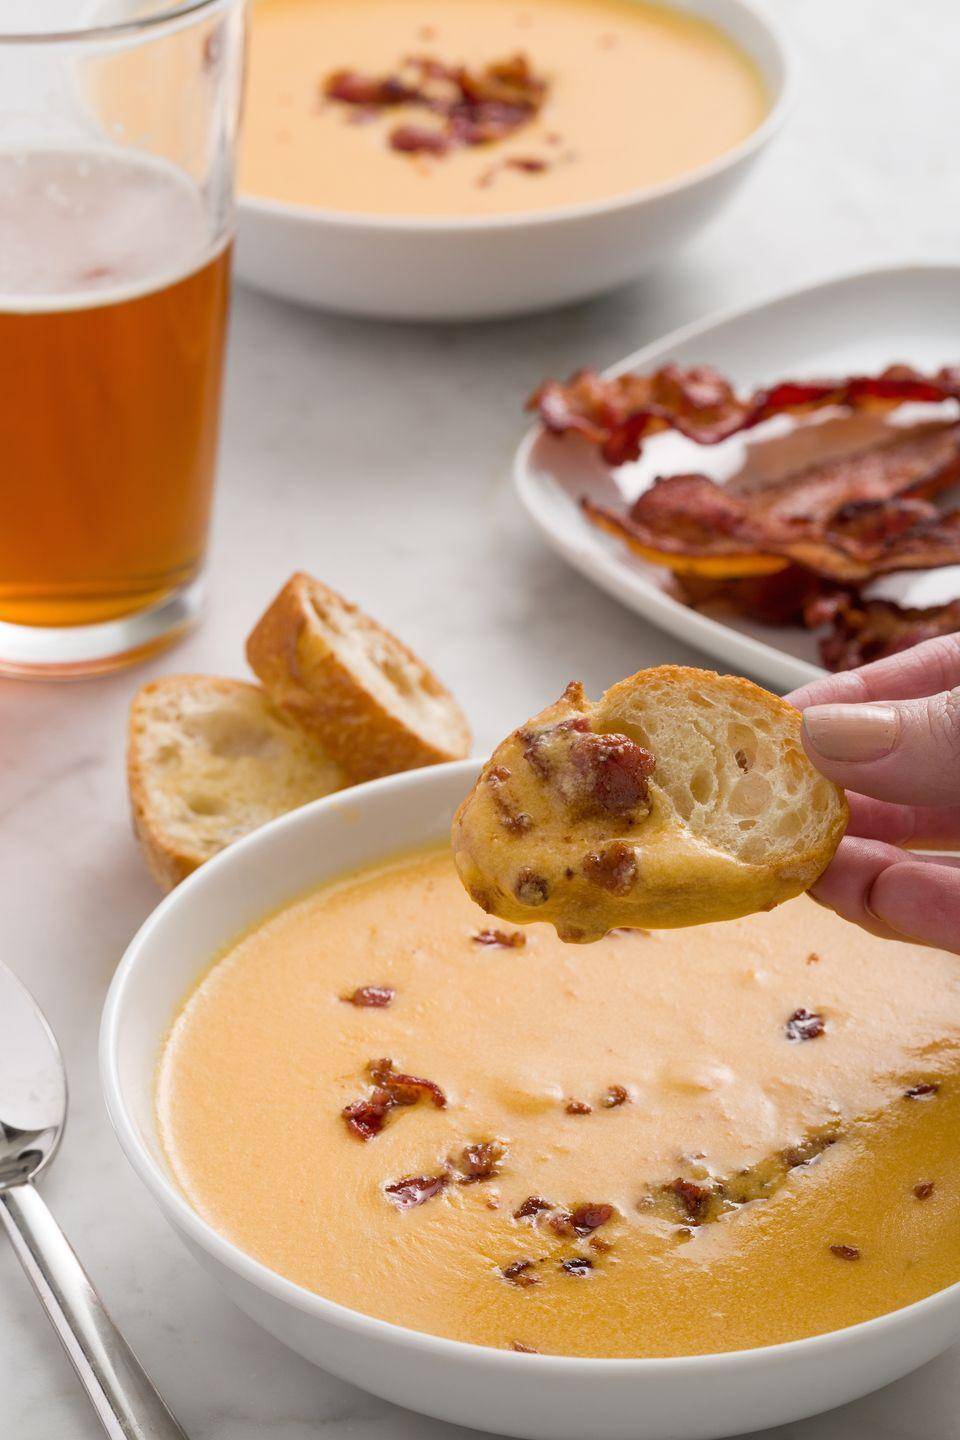 "<p>Basically an excuse to essentially drink melty cheese. (Winning.) Beer and smoky bacon add depth.</p><p>Get the recipe from <a href=""https://www.delish.com/cooking/recipe-ideas/recipes/a44739/bacon-beer-cheese-soup-recipe/"" rel=""nofollow noopener"" target=""_blank"" data-ylk=""slk:Delish"" class=""link rapid-noclick-resp"">Delish</a>.</p>"